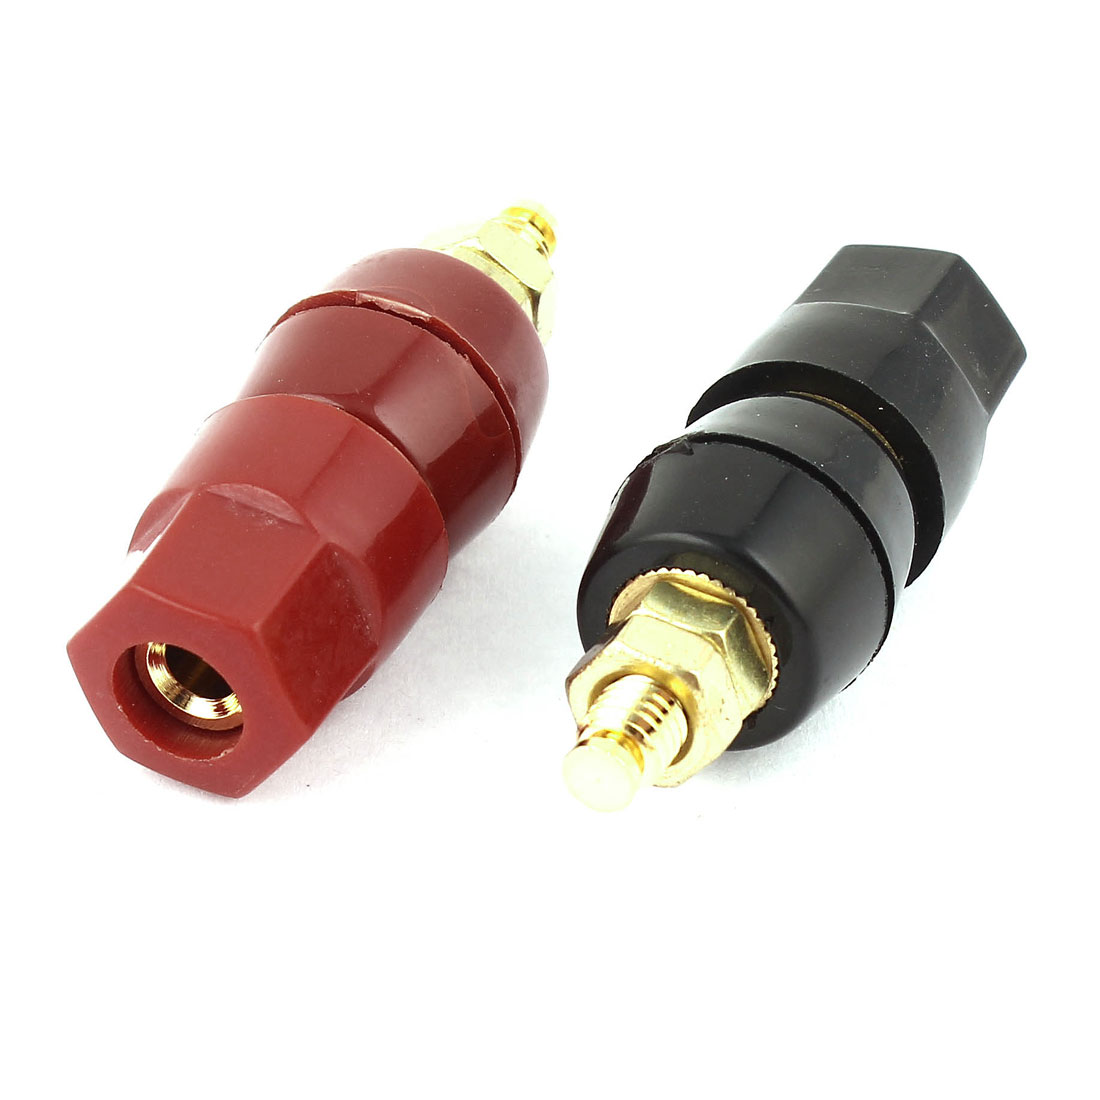 2 Pcs Red Black Binding Post Audio Speaker Terminal for 4mm Banana Connector